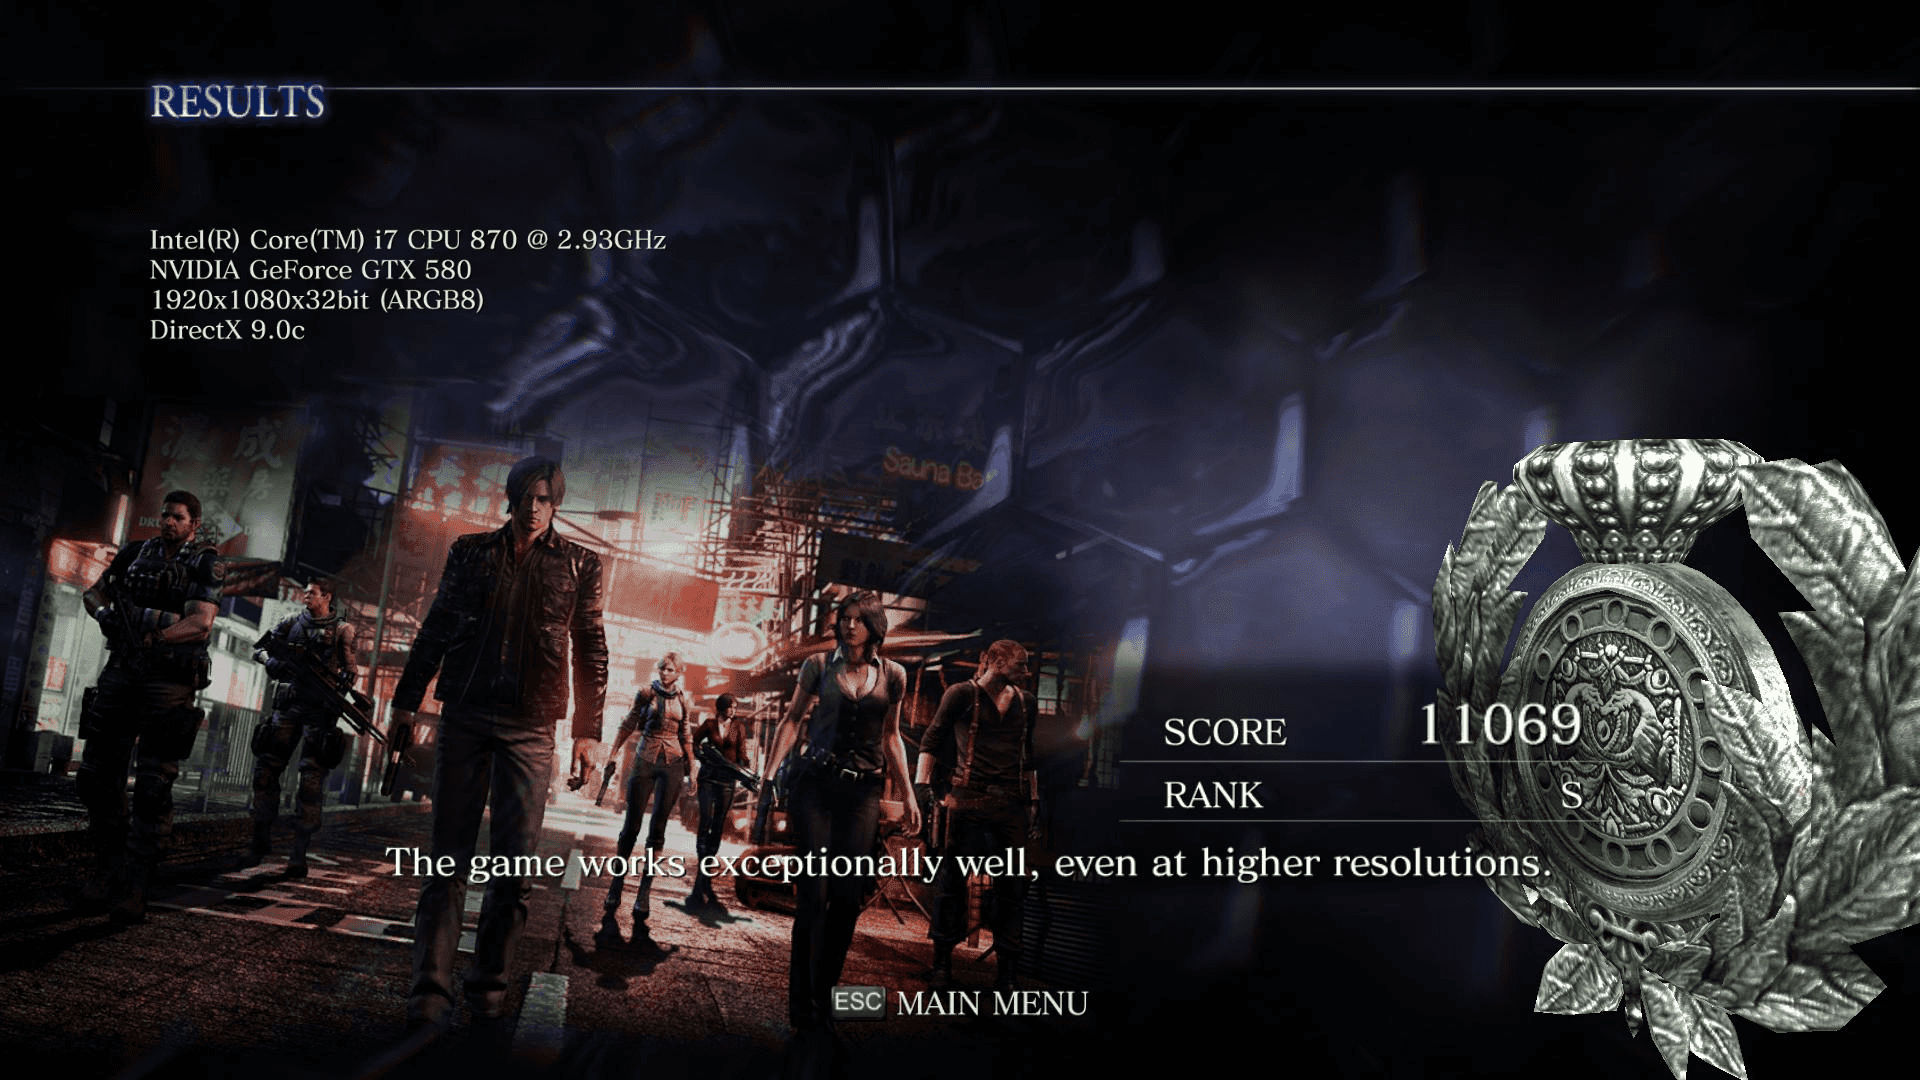 Download Resident Evil 6 Benchmark | TechPowerUp